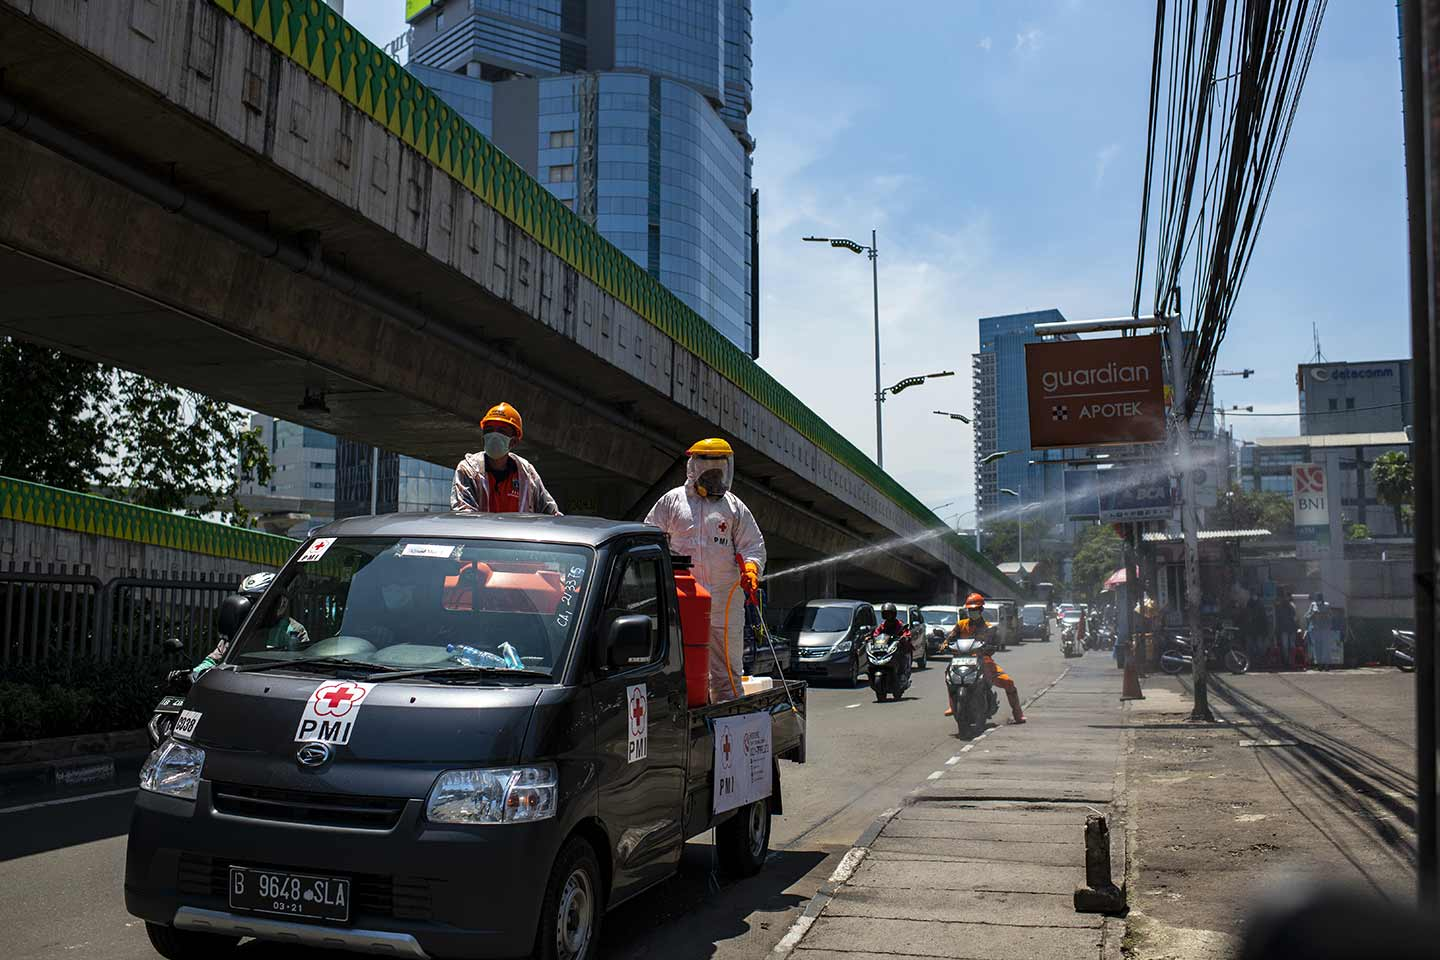 The Indonesian Red Cross spraying disinfectants on its own streets to fight with Covid-19 in Jakarta, Indonesia in March, 2020.  Credit: UNICEF/2020/Arimacs Wilander